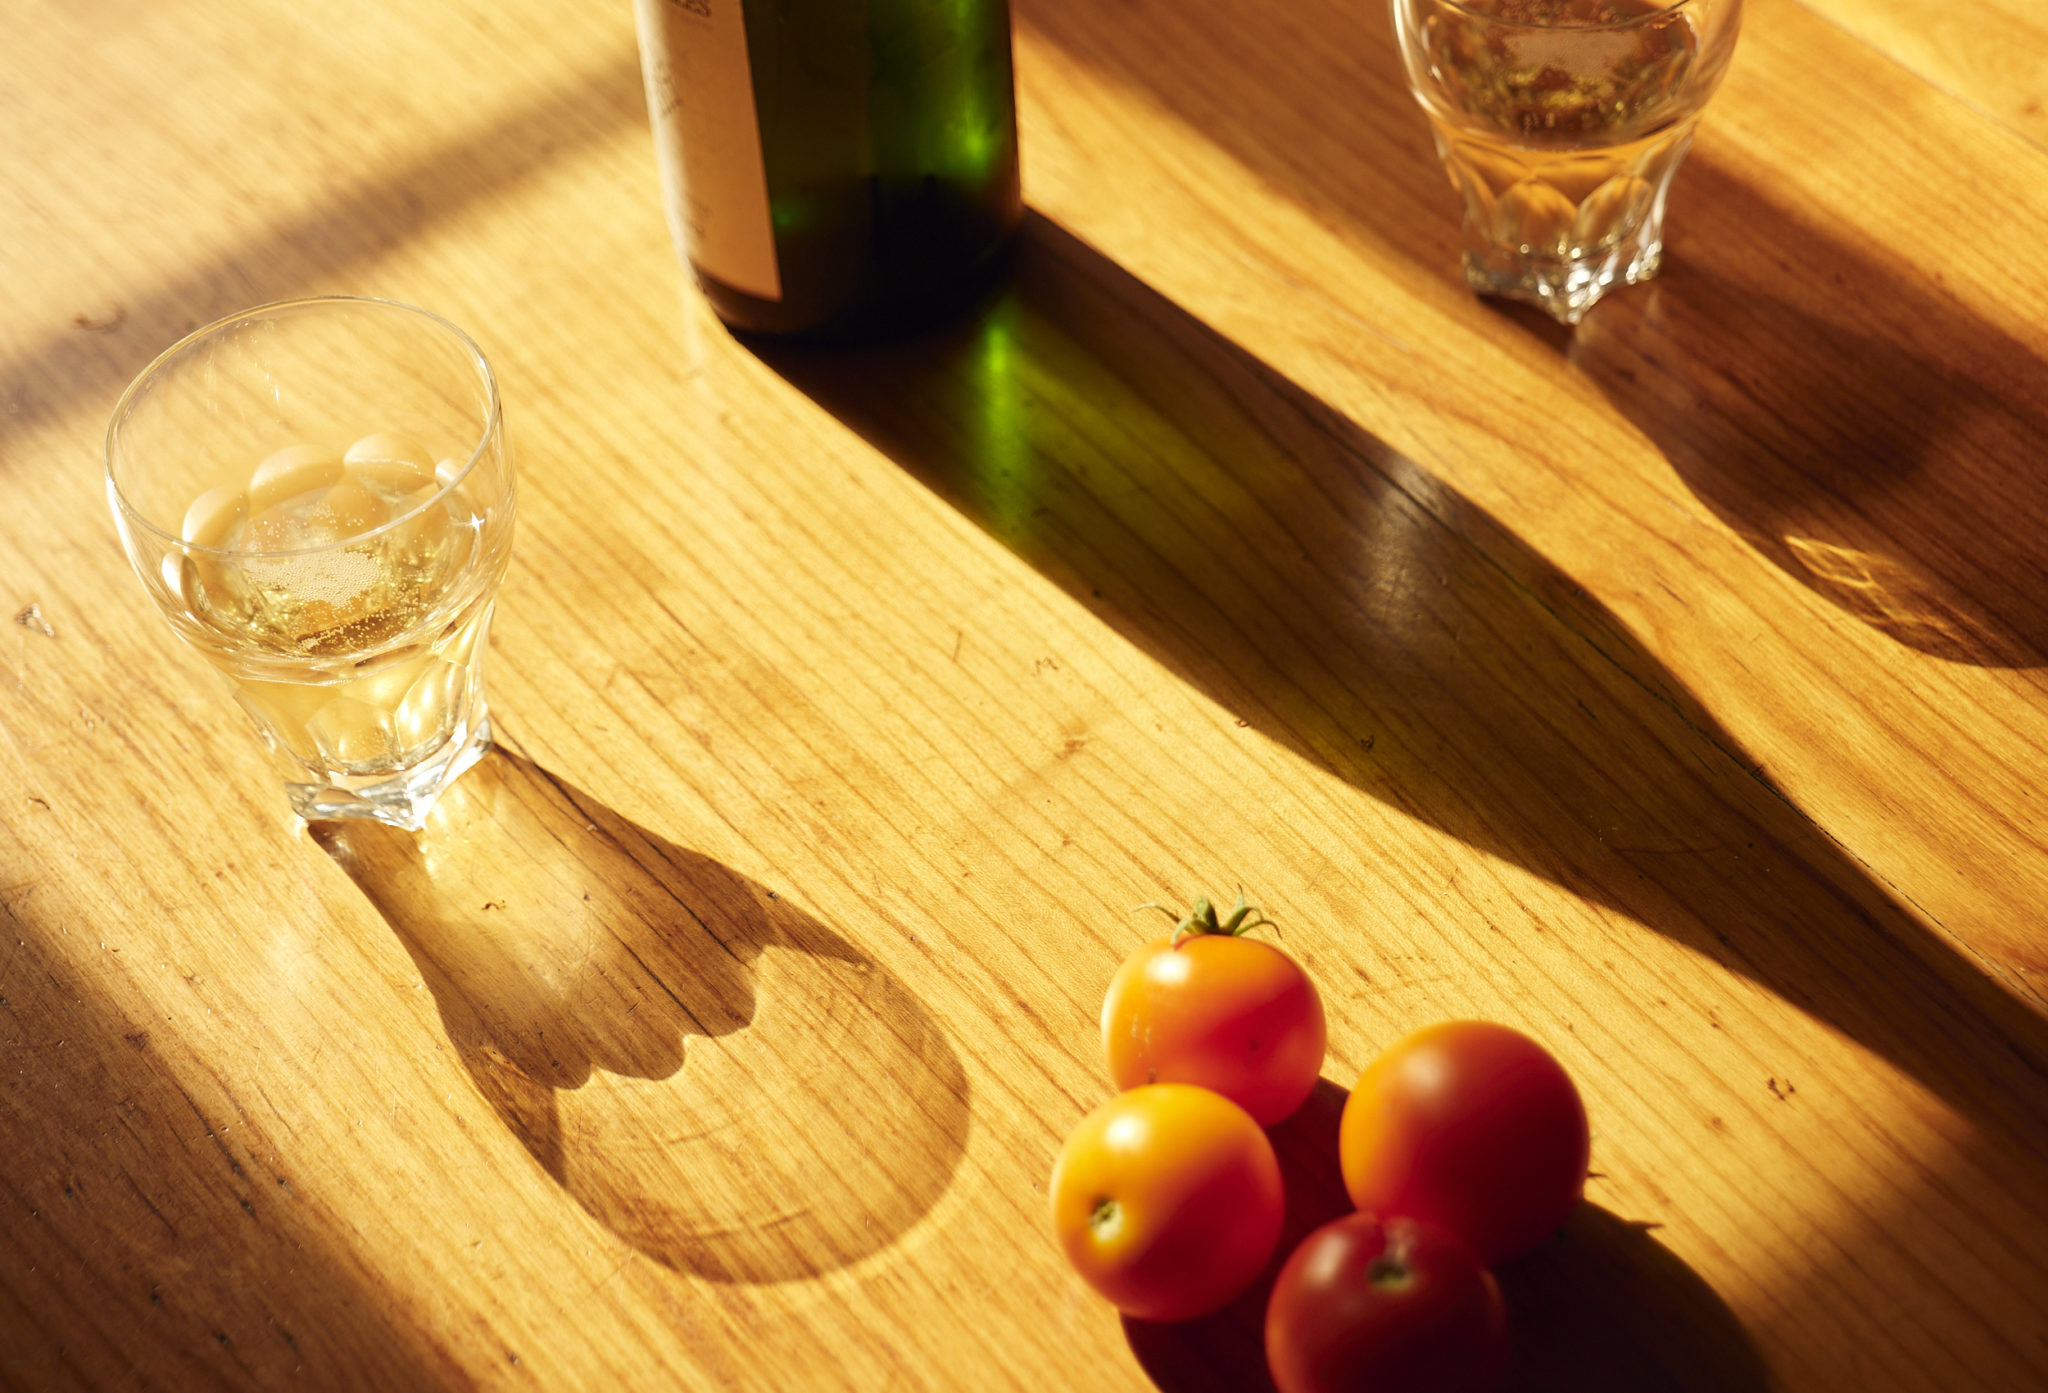 kitchen table with tomatoes